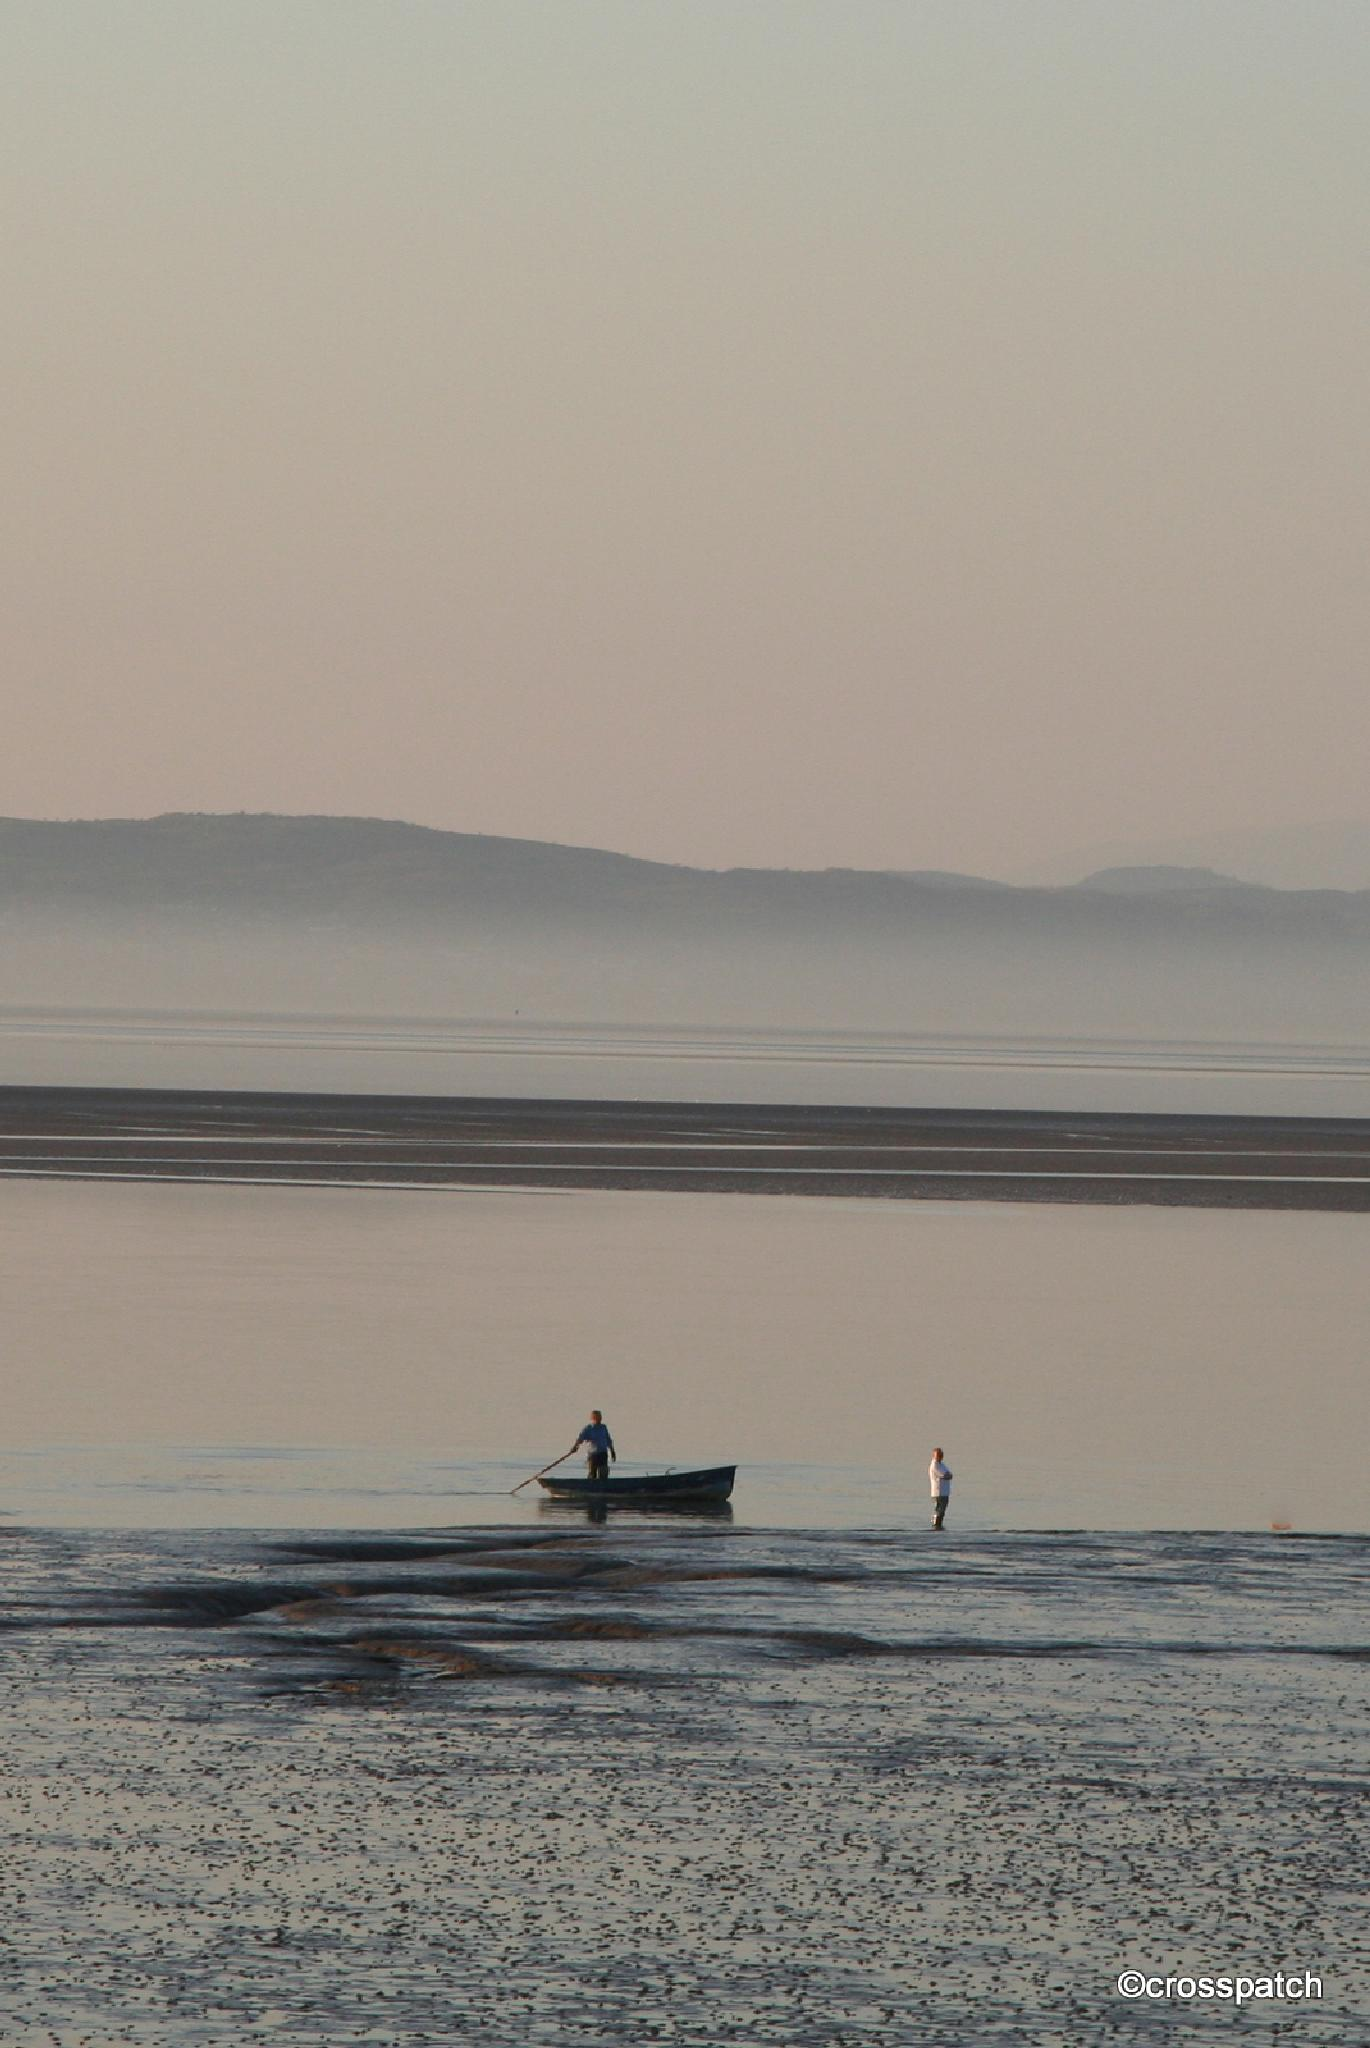 Late afternoon, the sun setting in Morecambe bay by lison Townley